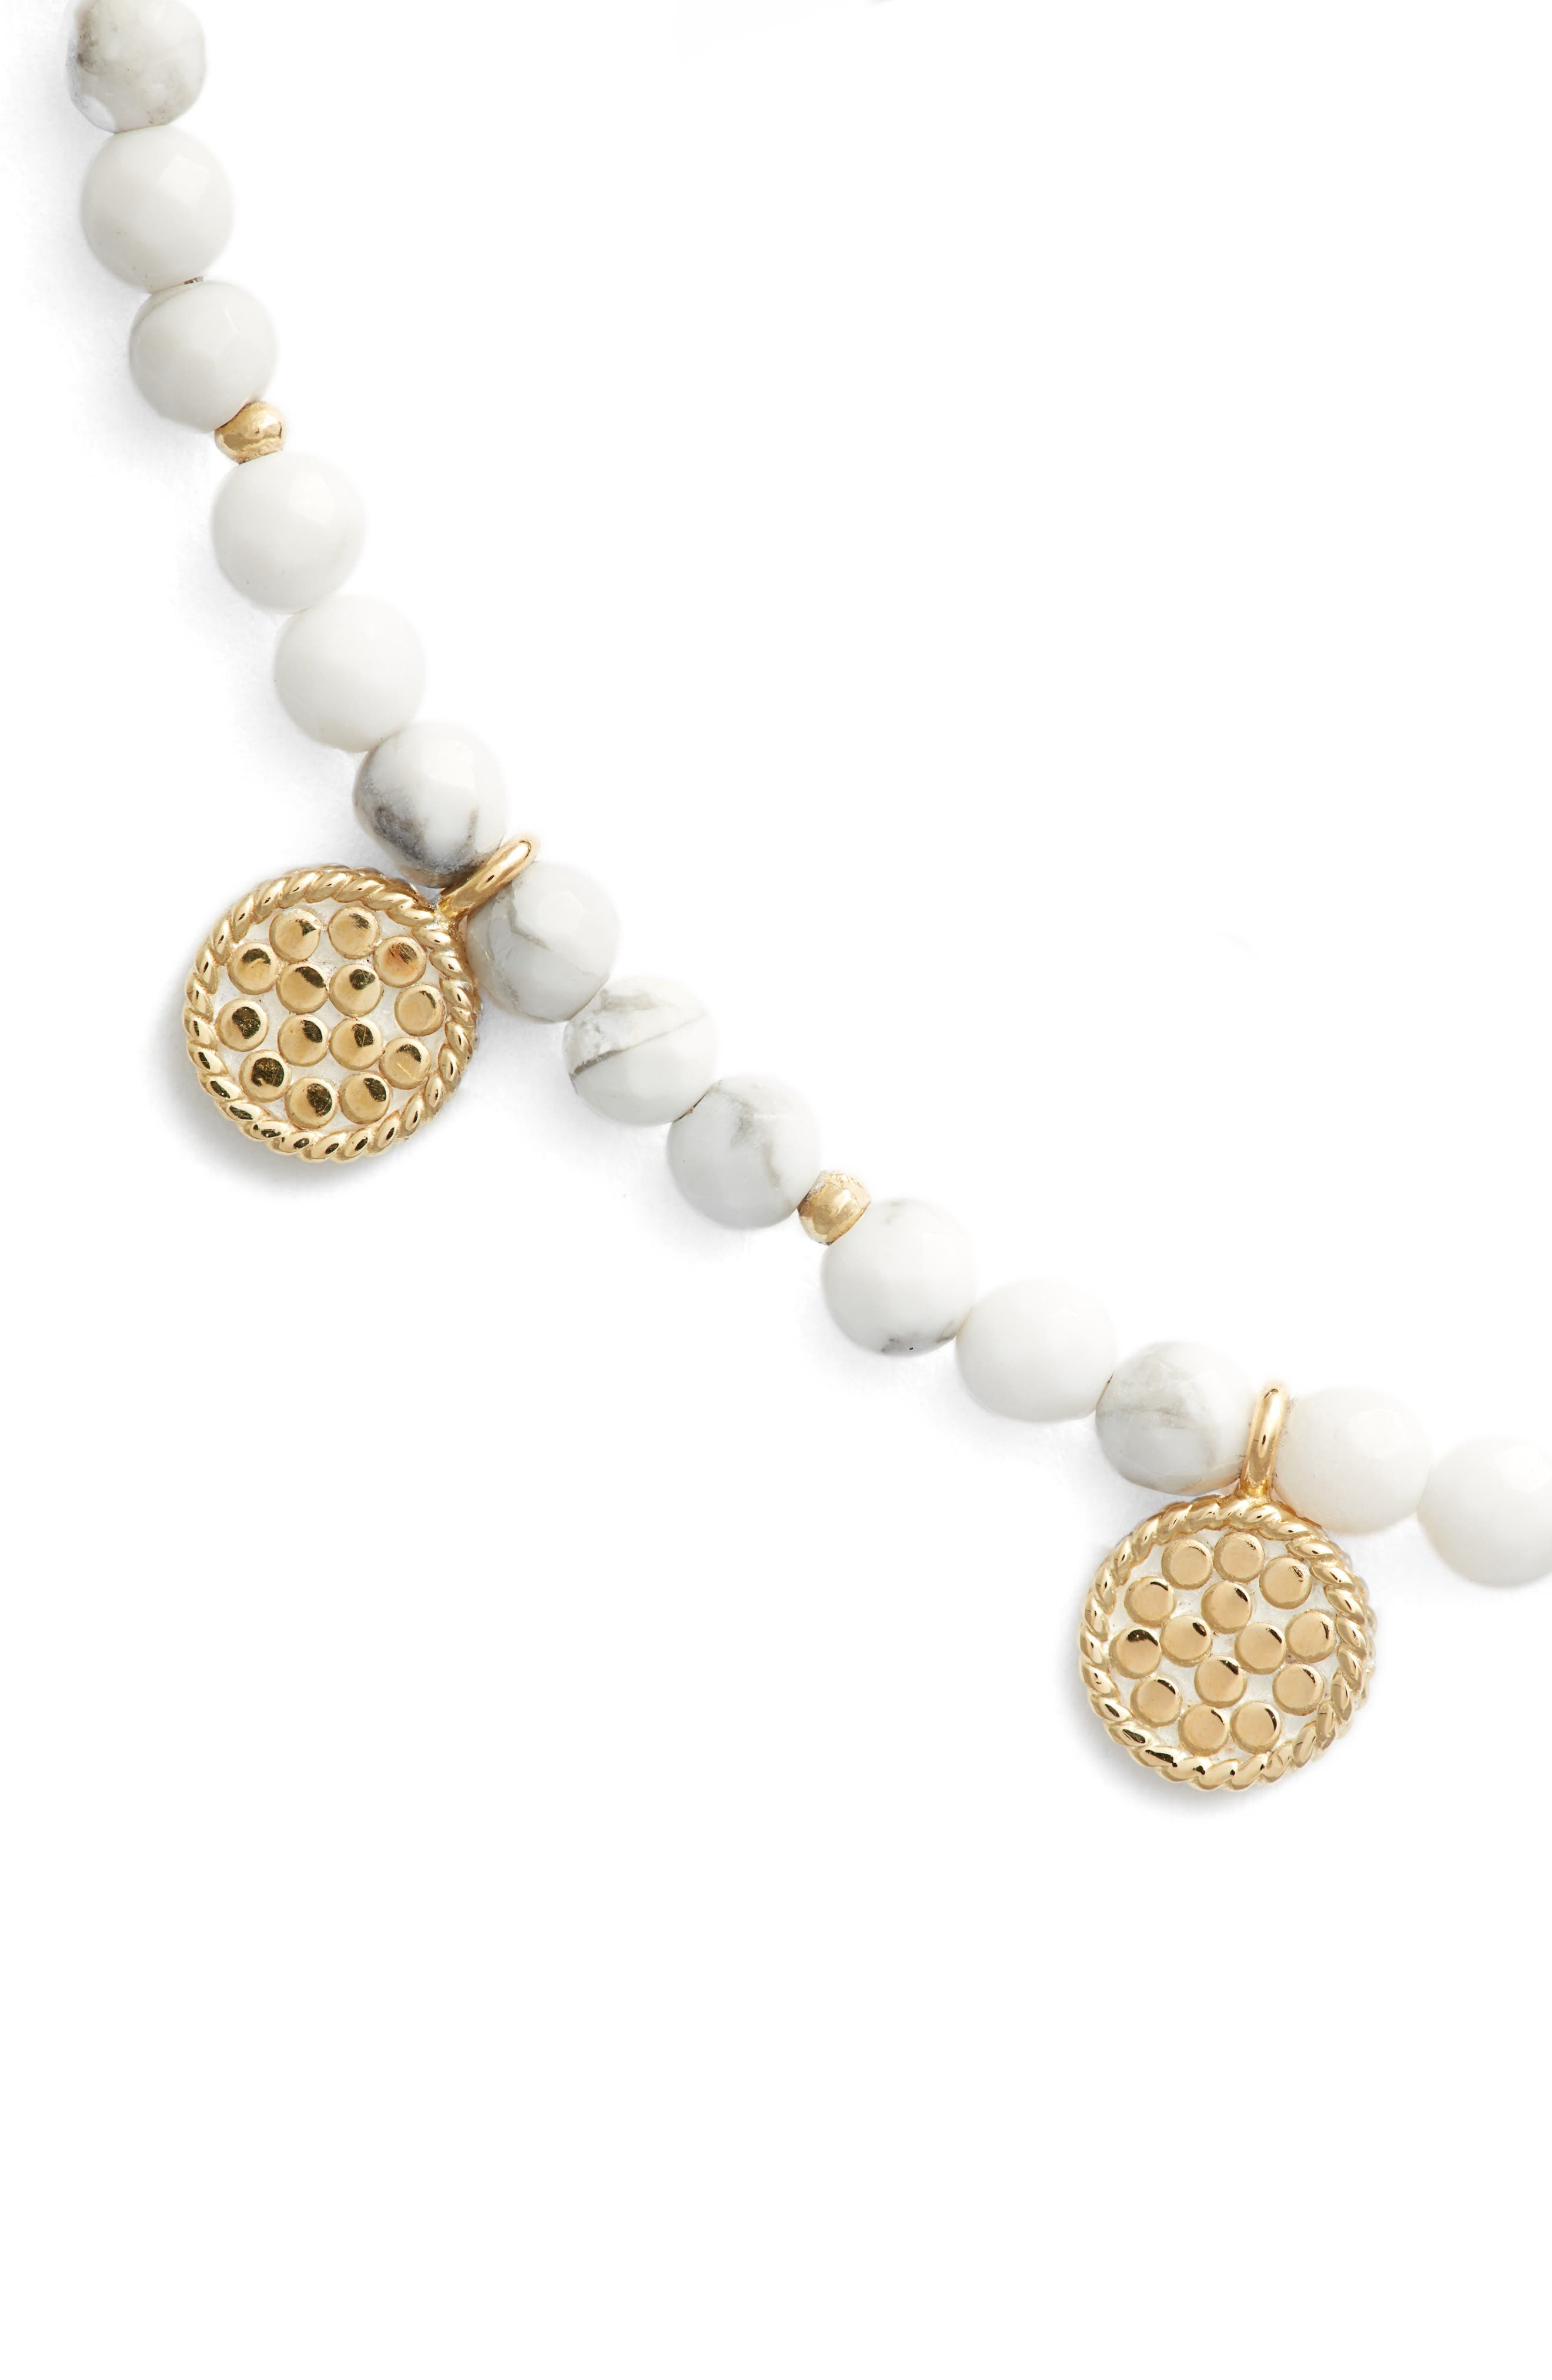 Howlite Beaded Charm Necklace,                             Alternate thumbnail 2, color,                             Gold/ Howlite